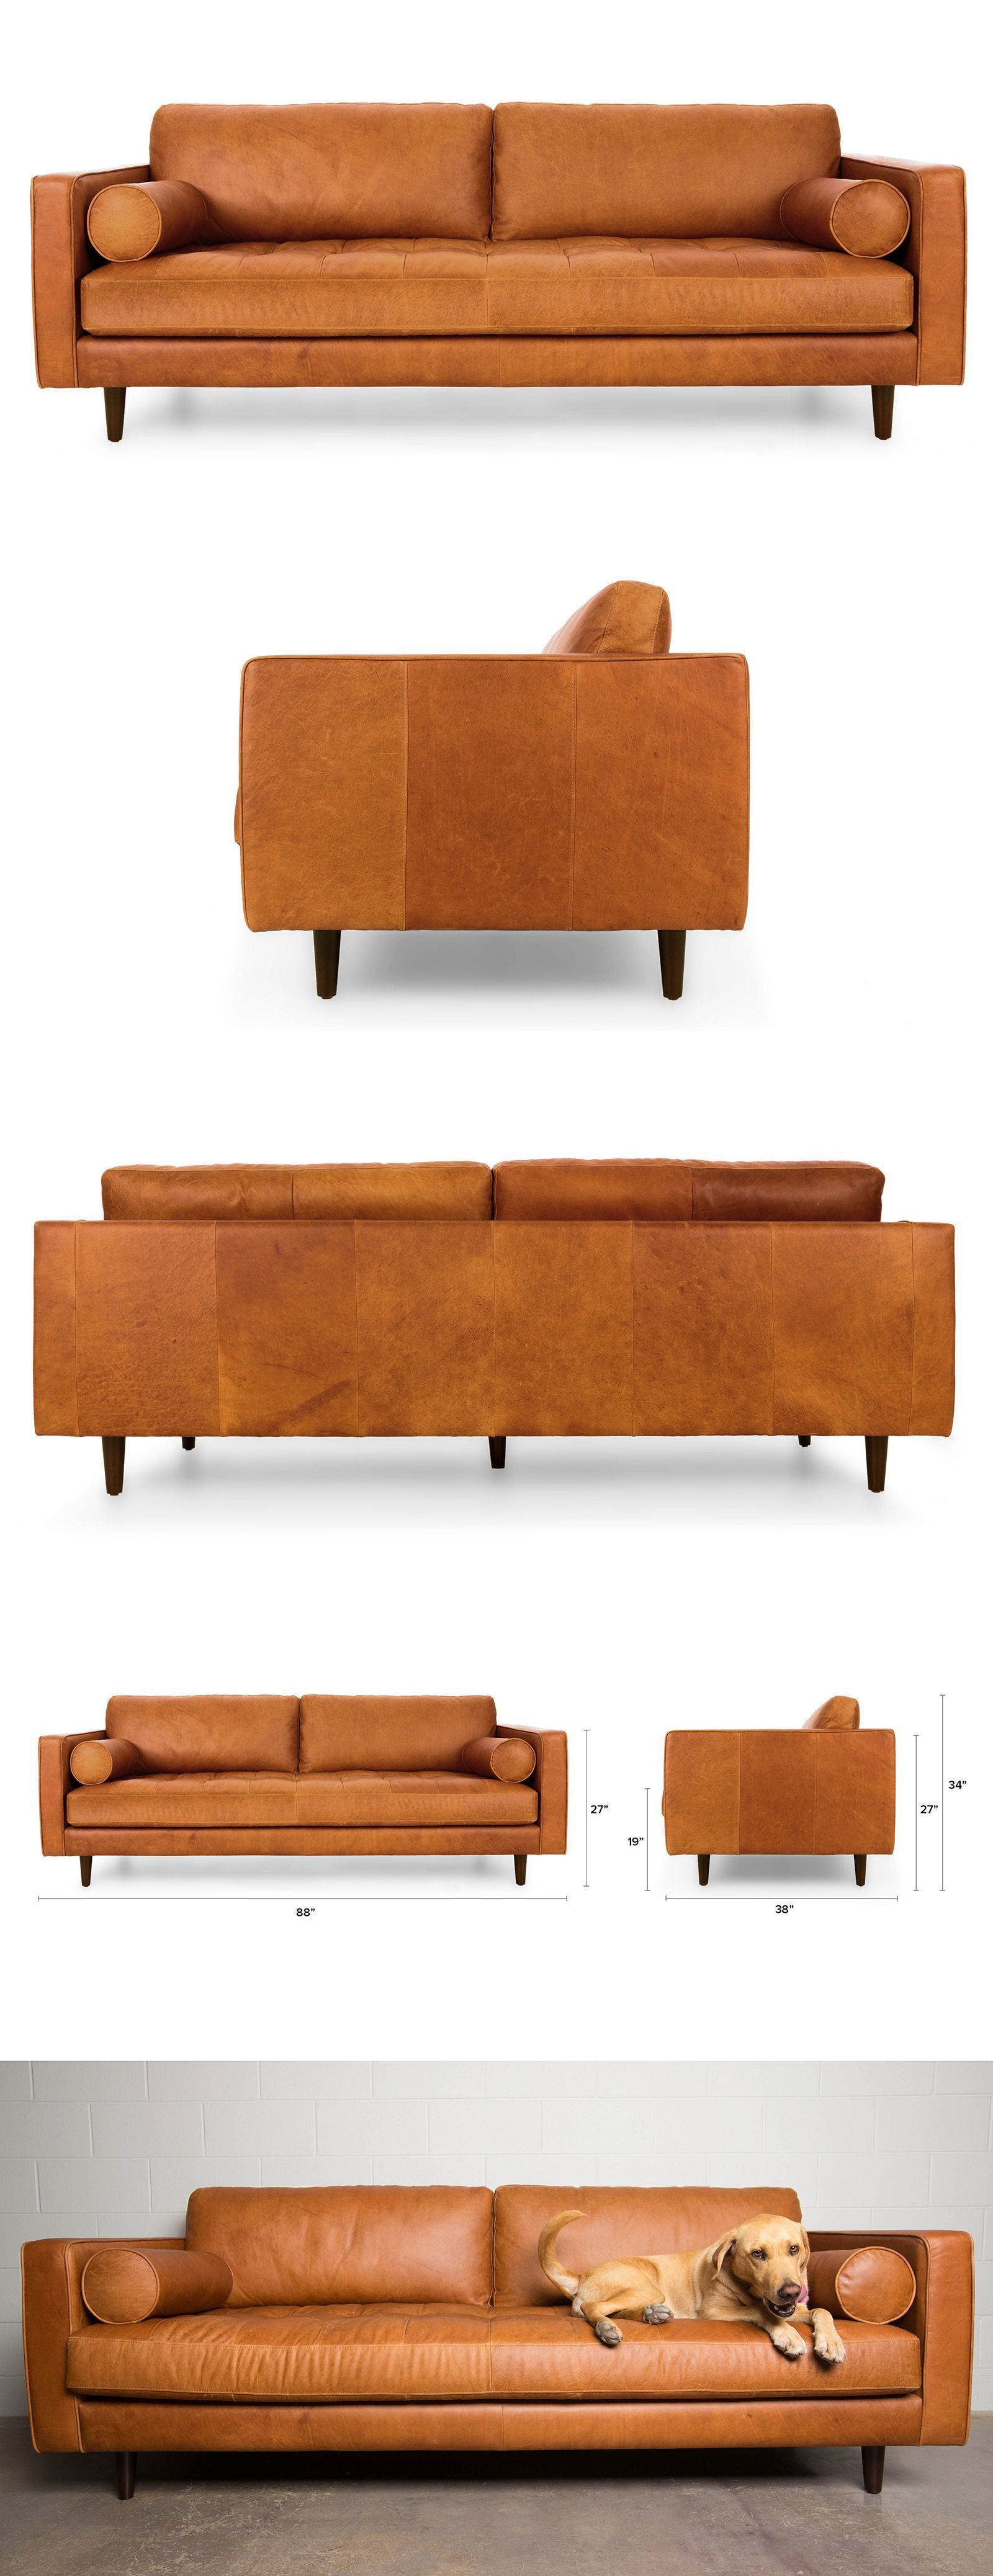 Decorate your home with quality furniture at everyday low prices. rn ...